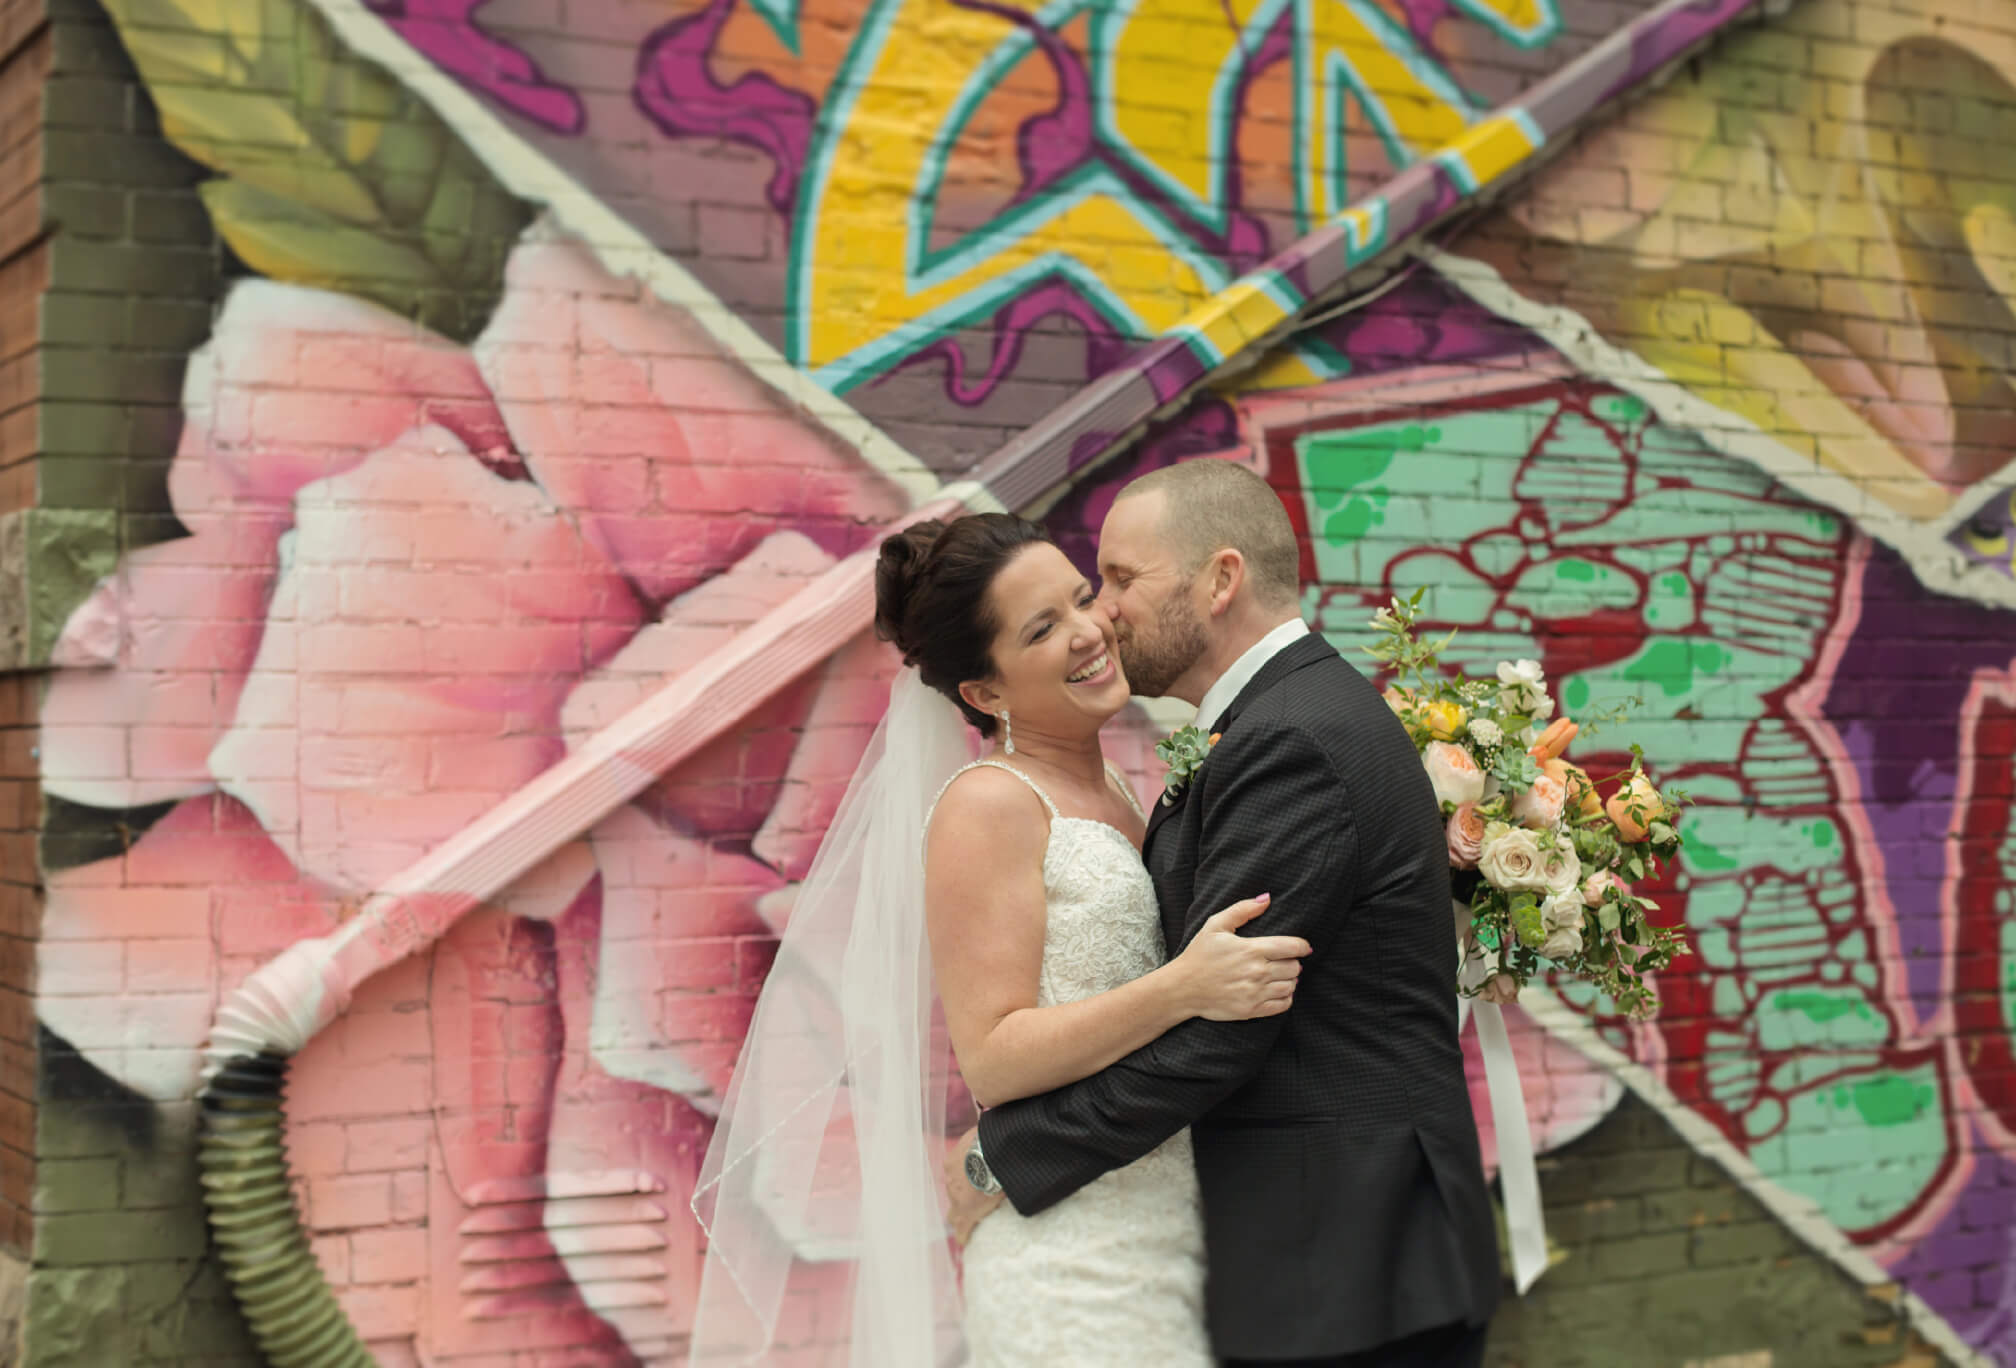 grafitti alley wedding photography